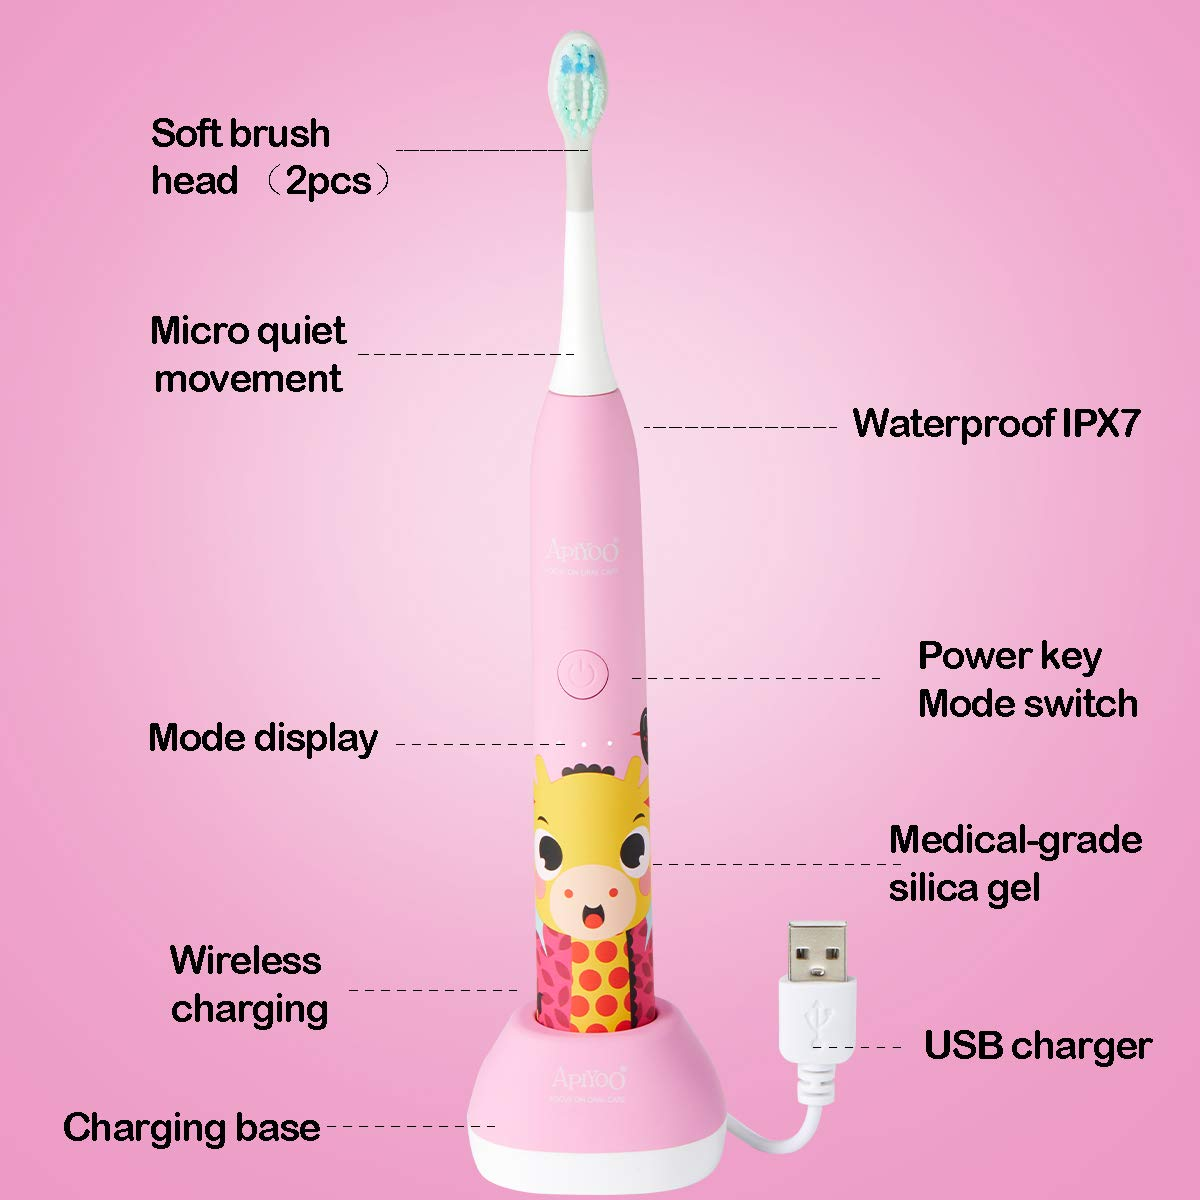 Apiyoo Kids Electric Toothbrush, A7 Sonic Wireless Rechargeable Toothbrush, IPX7 Waterproof with 3 Brushing Modes, 2 Min Smart Timer for Kids. (Pink) by Apiyoo (Image #8)